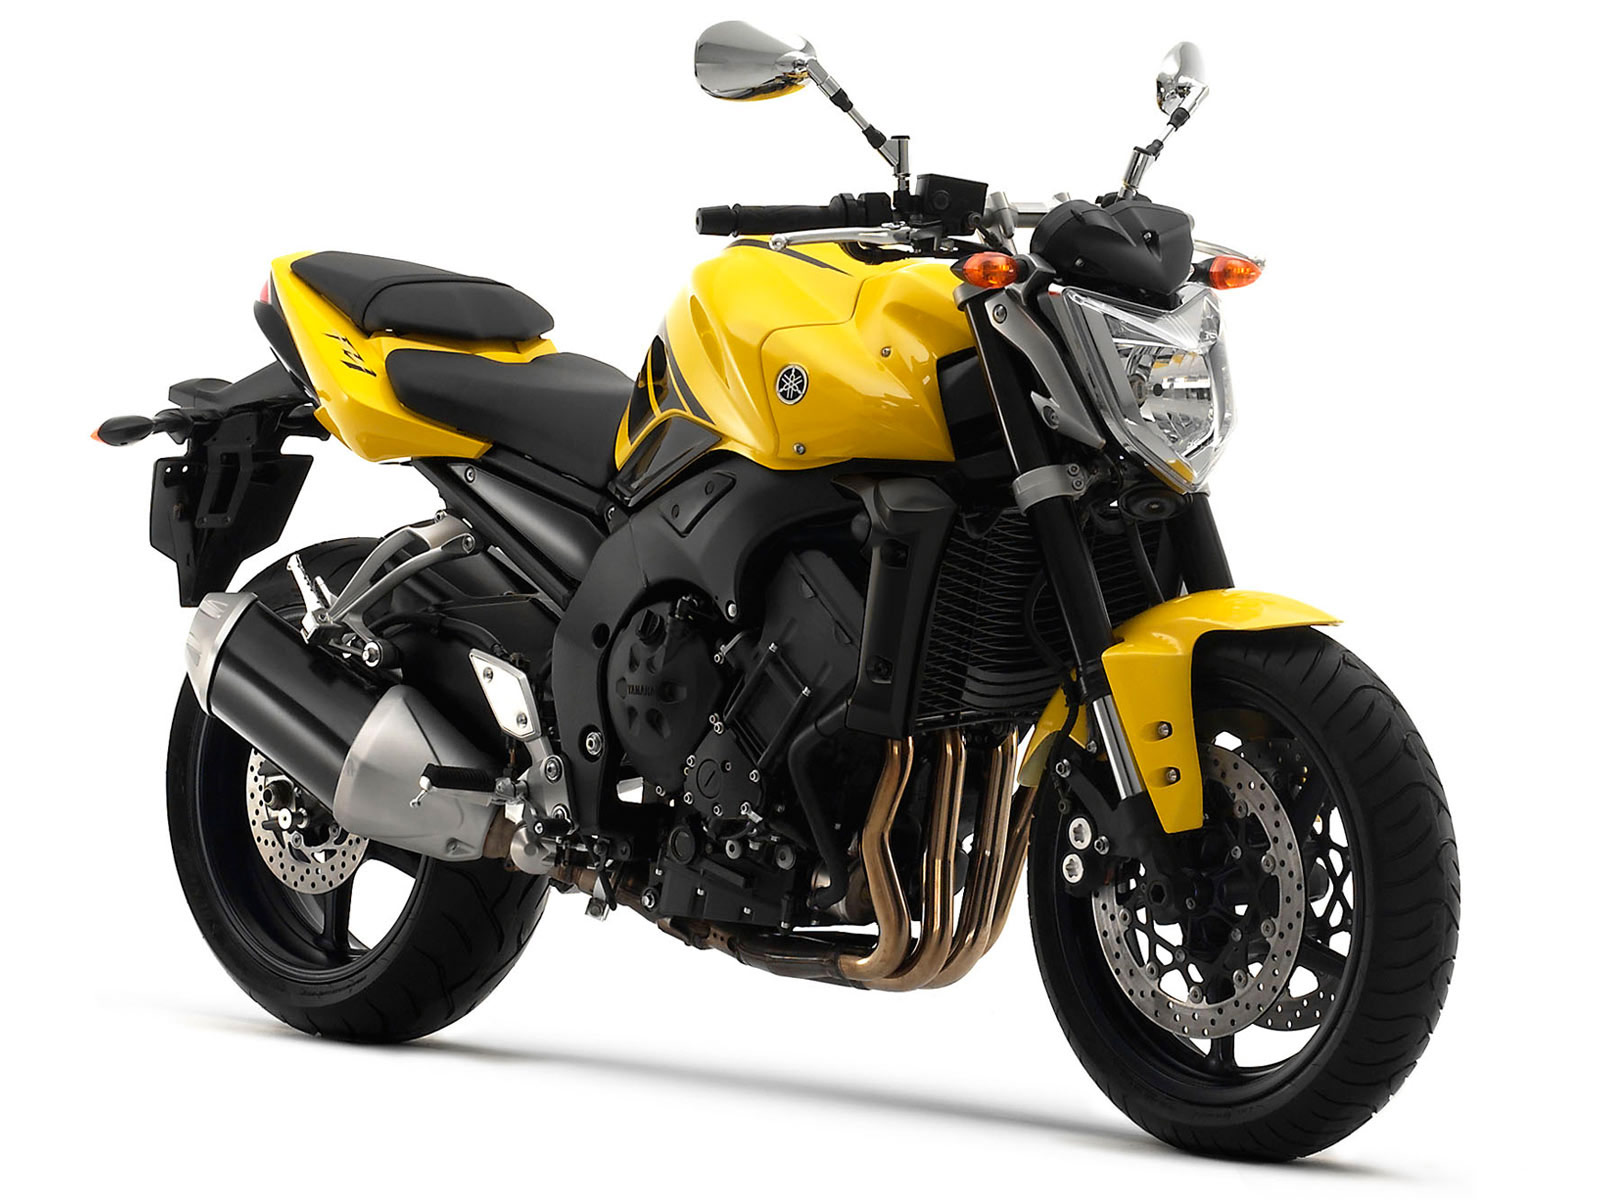 Yamaha fz 09 horsepower rating autos post for Yamaha fz 09 horsepower